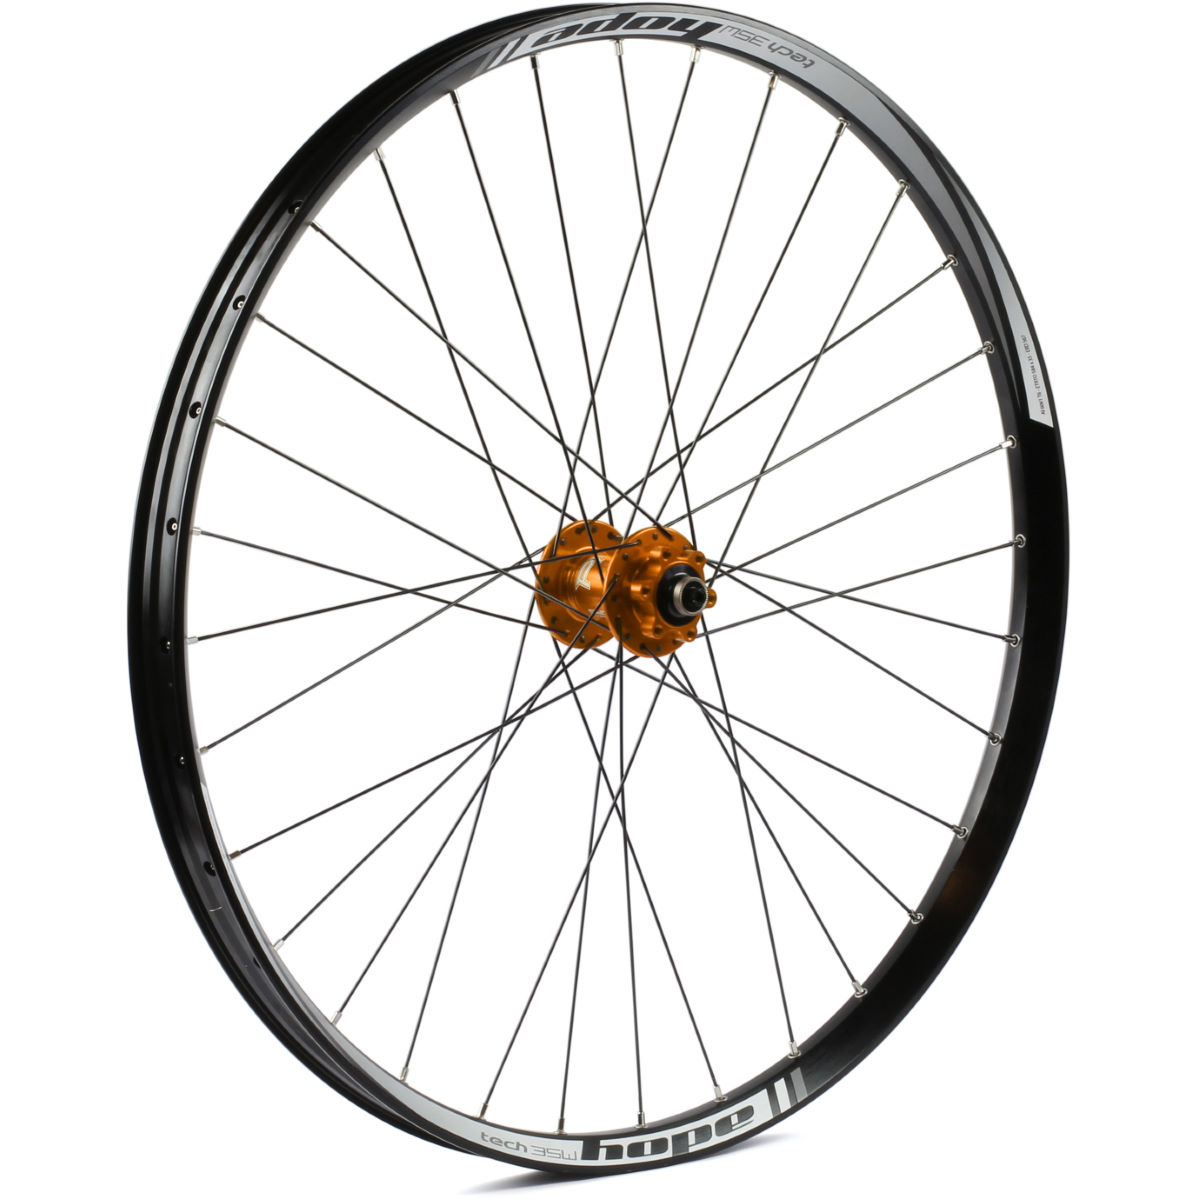 Roue avant VTT Hope Tech 35W Pro 4 - 27.5+'' n/a QR/15x100 Orange